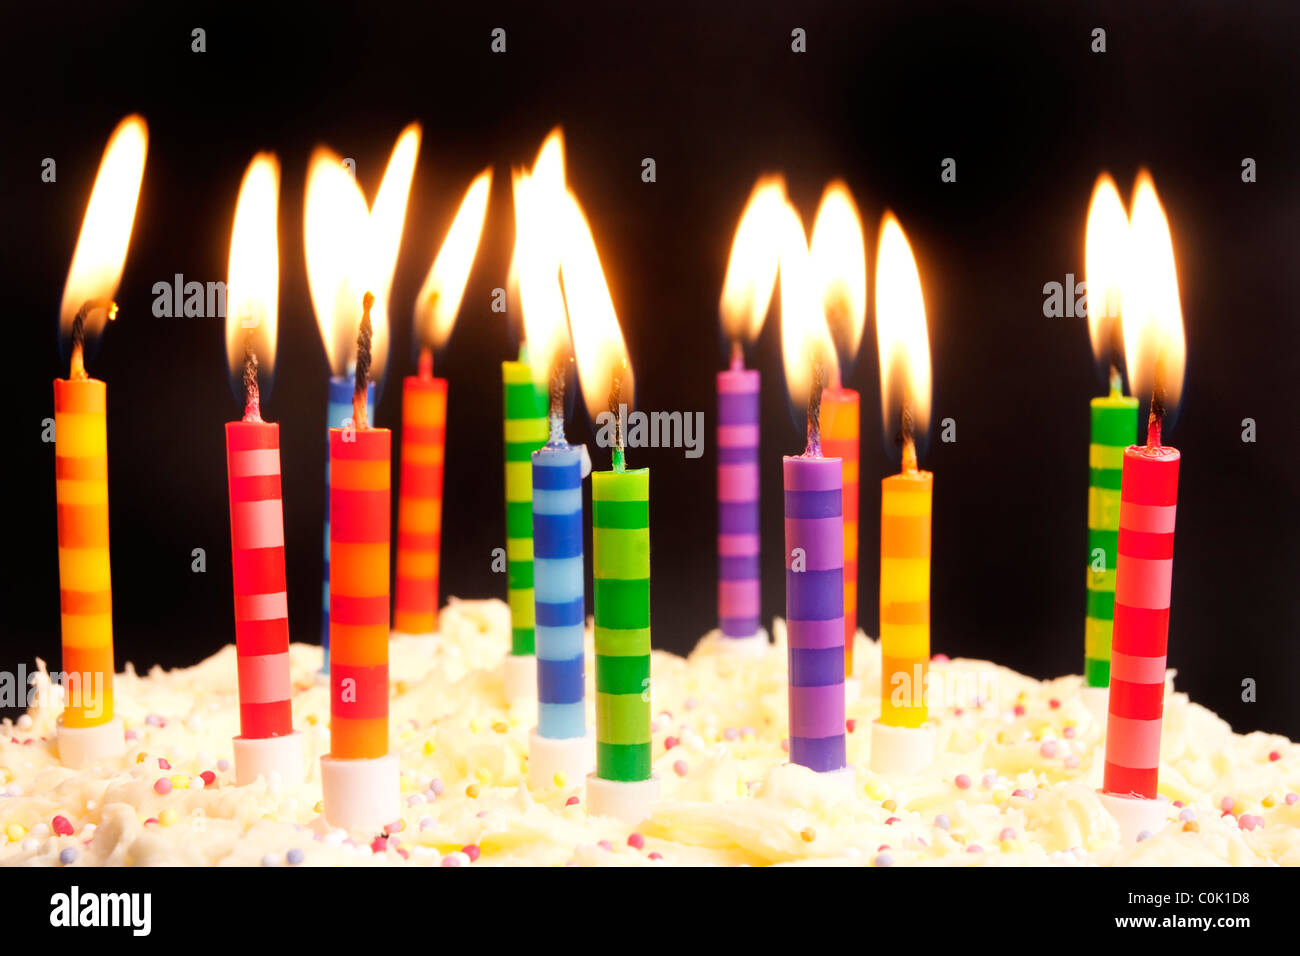 Birthday Cake Shot Images ~ Happy birthday cake shot on a black background with candles stock